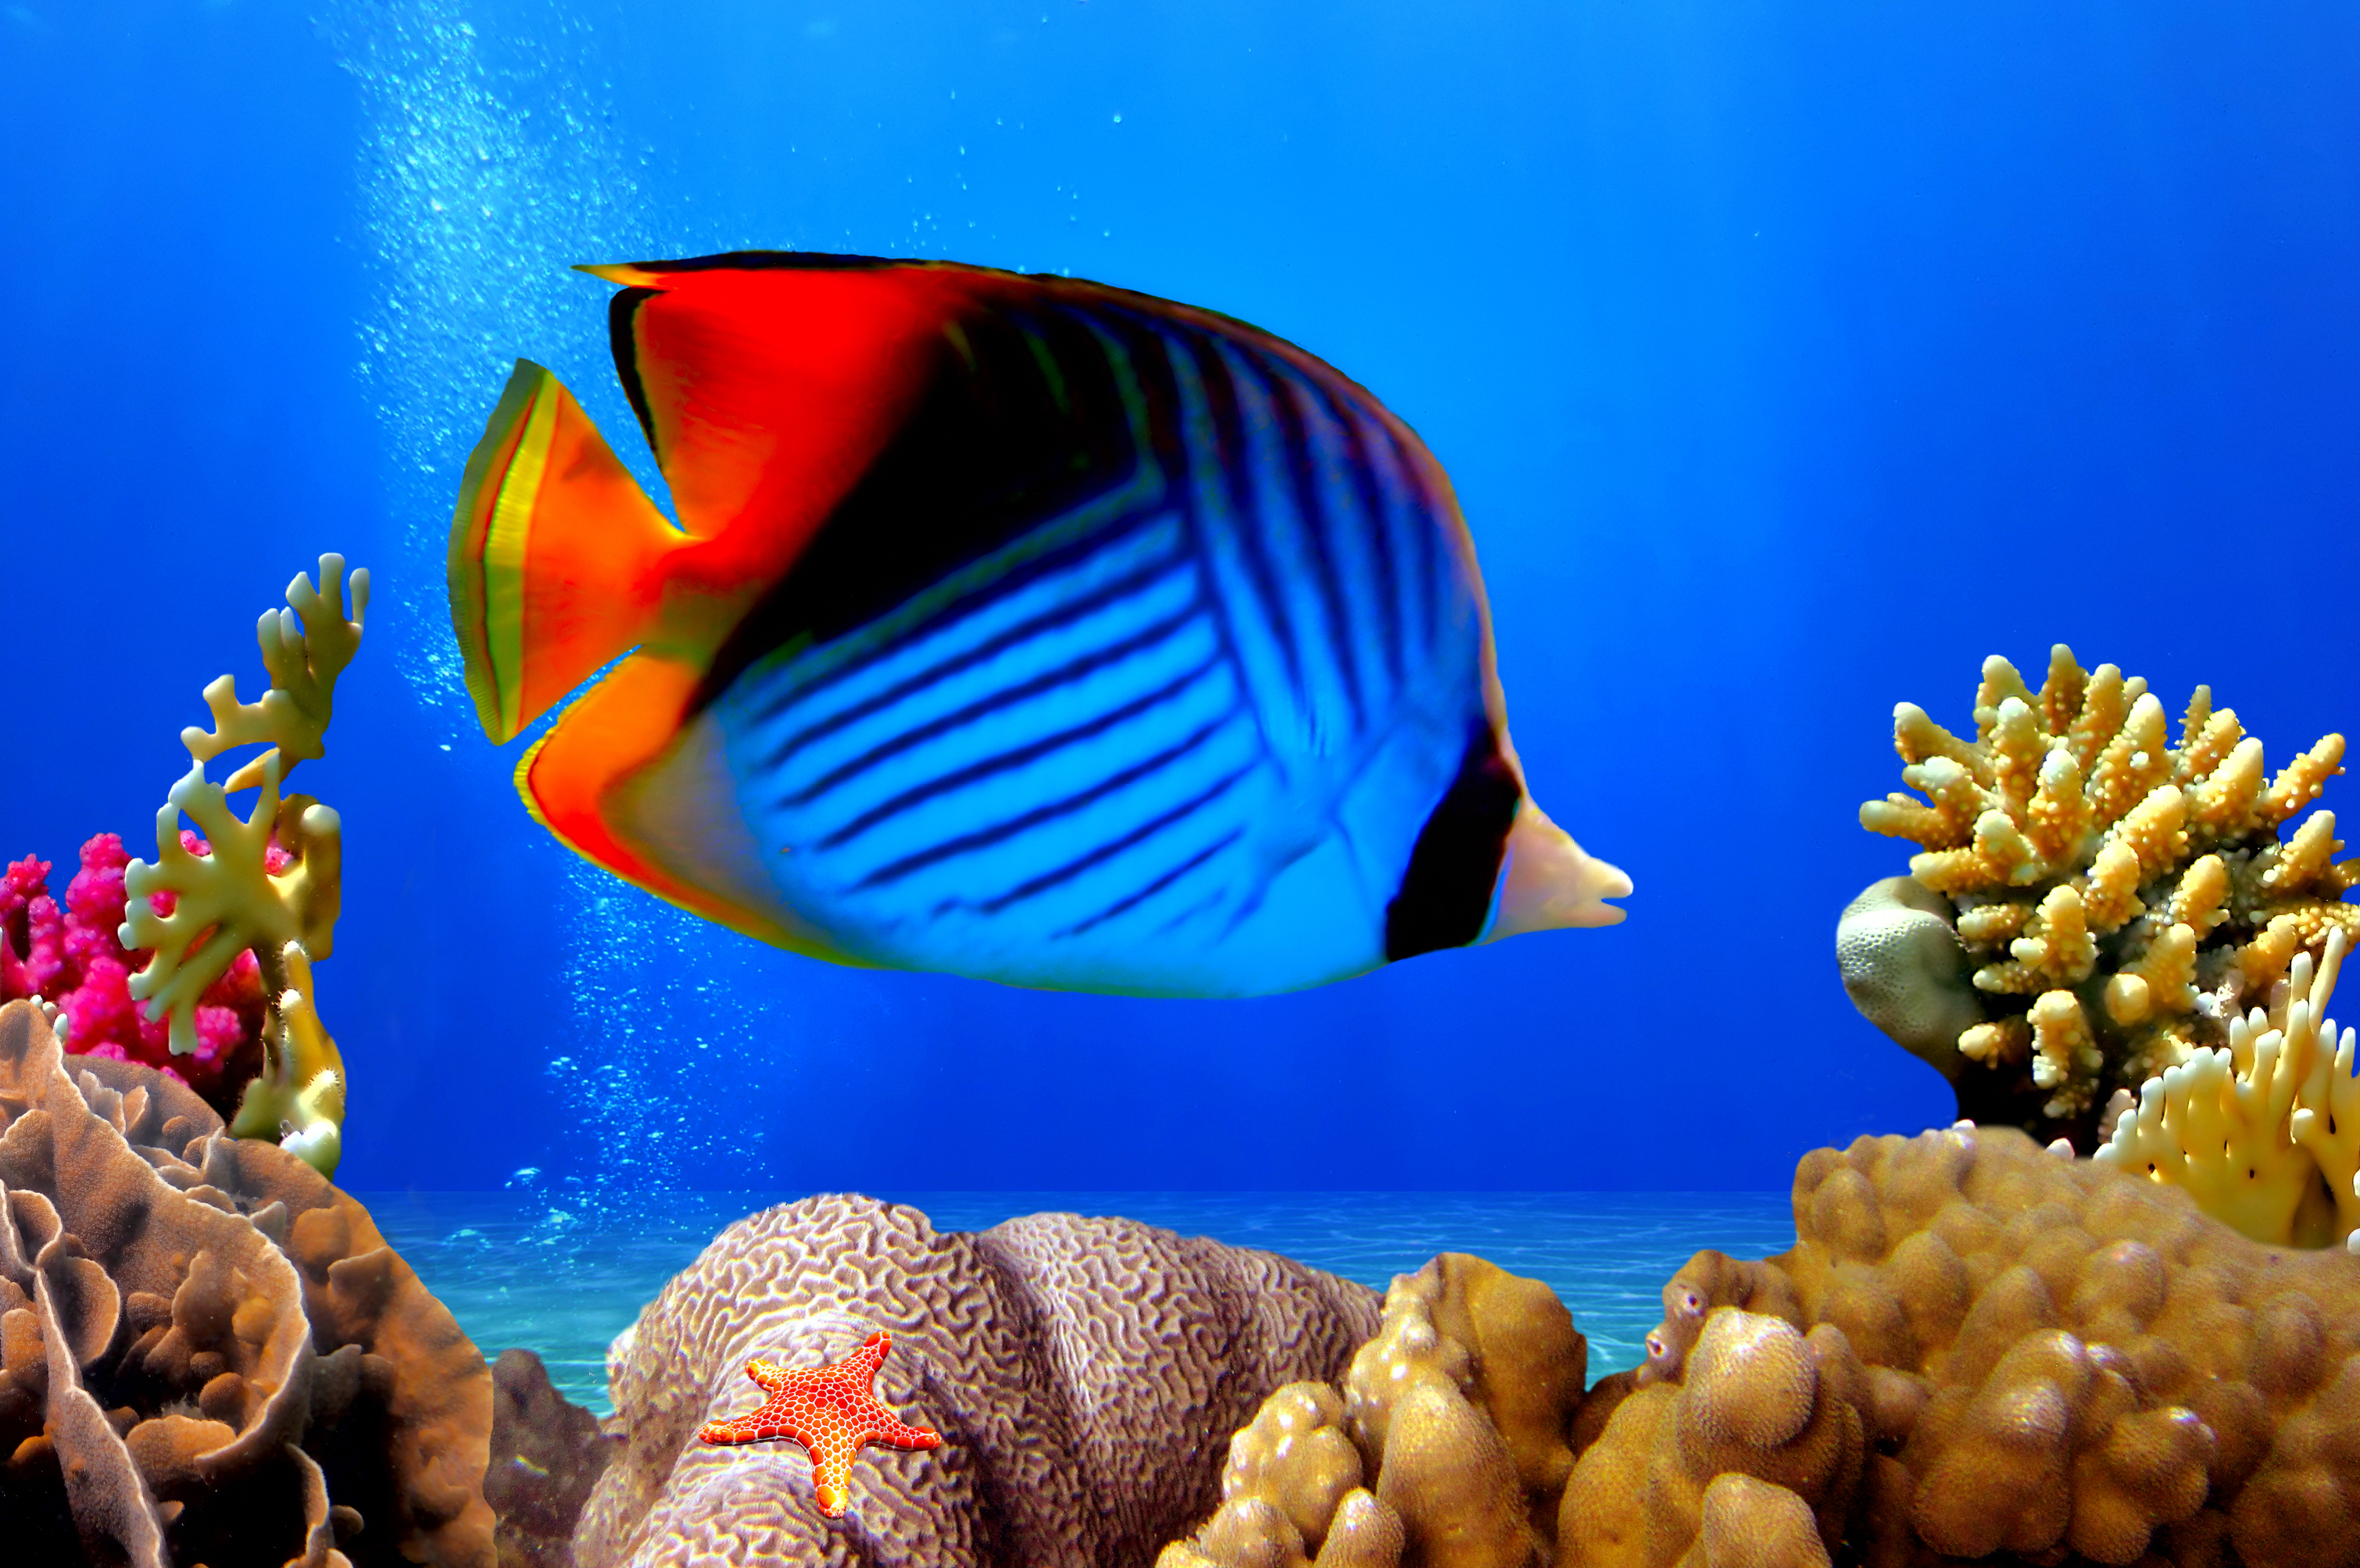 the factors that play an important role in fish production in coral reefs Start studying 2nd semester study notes marine science coral reefs are important because all of the factors below play a role in creating ocean currents.